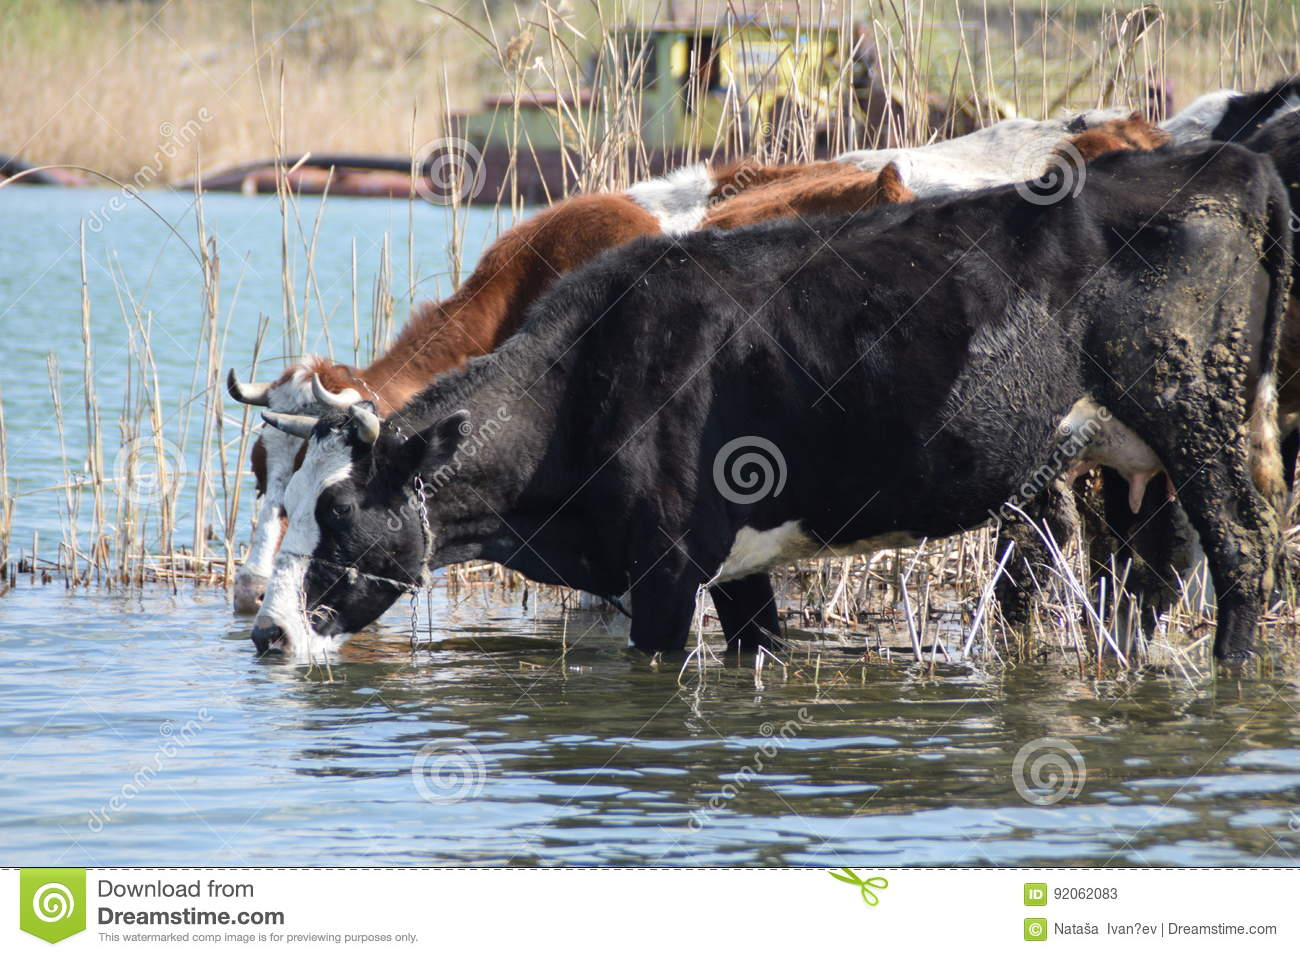 Two cows on the watering hole surrounded by reeds, with a sand dredging boat working in the background